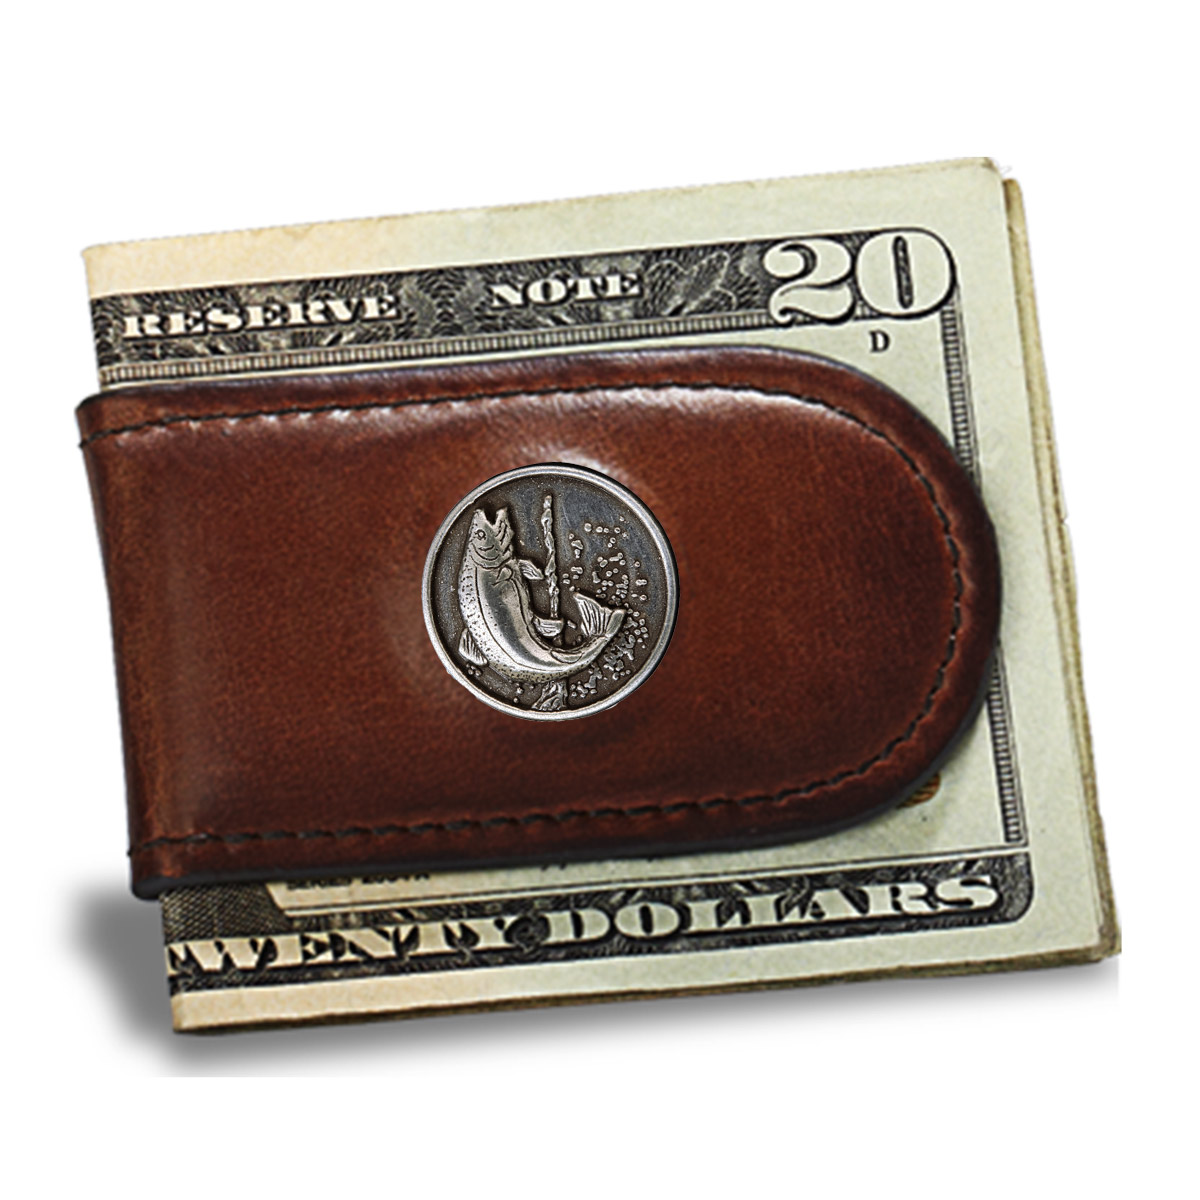 Premium Leather Men's Caramel Brown Money Clip with Trout Concho